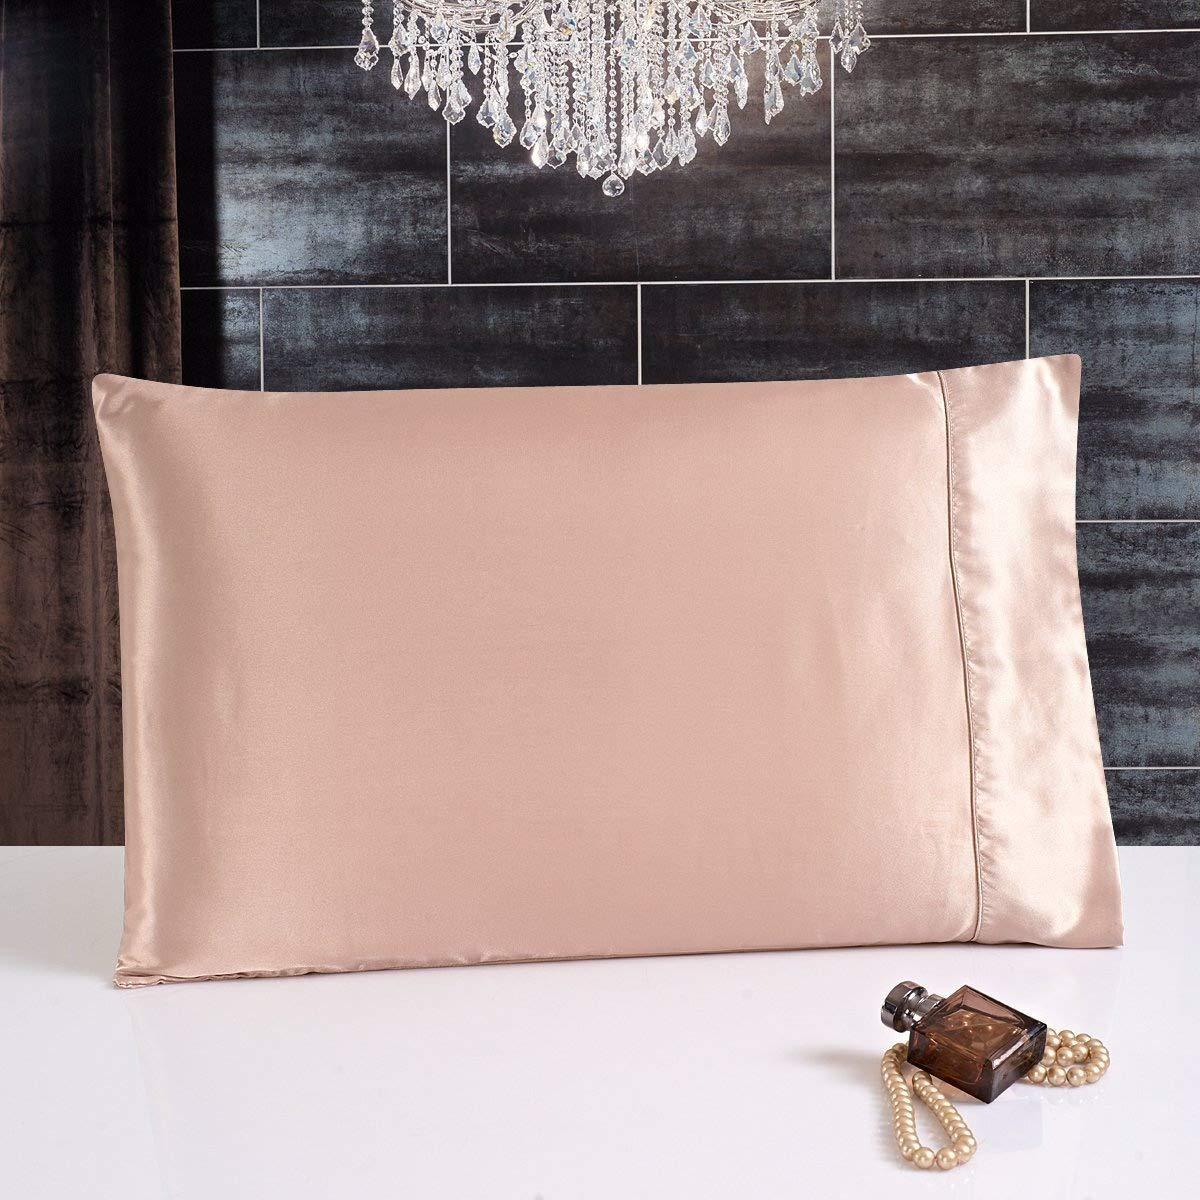 25 MOMME FAUX SILK SATIN CHARMEUSE PILLOWCASE (Beige) Sucomfortable